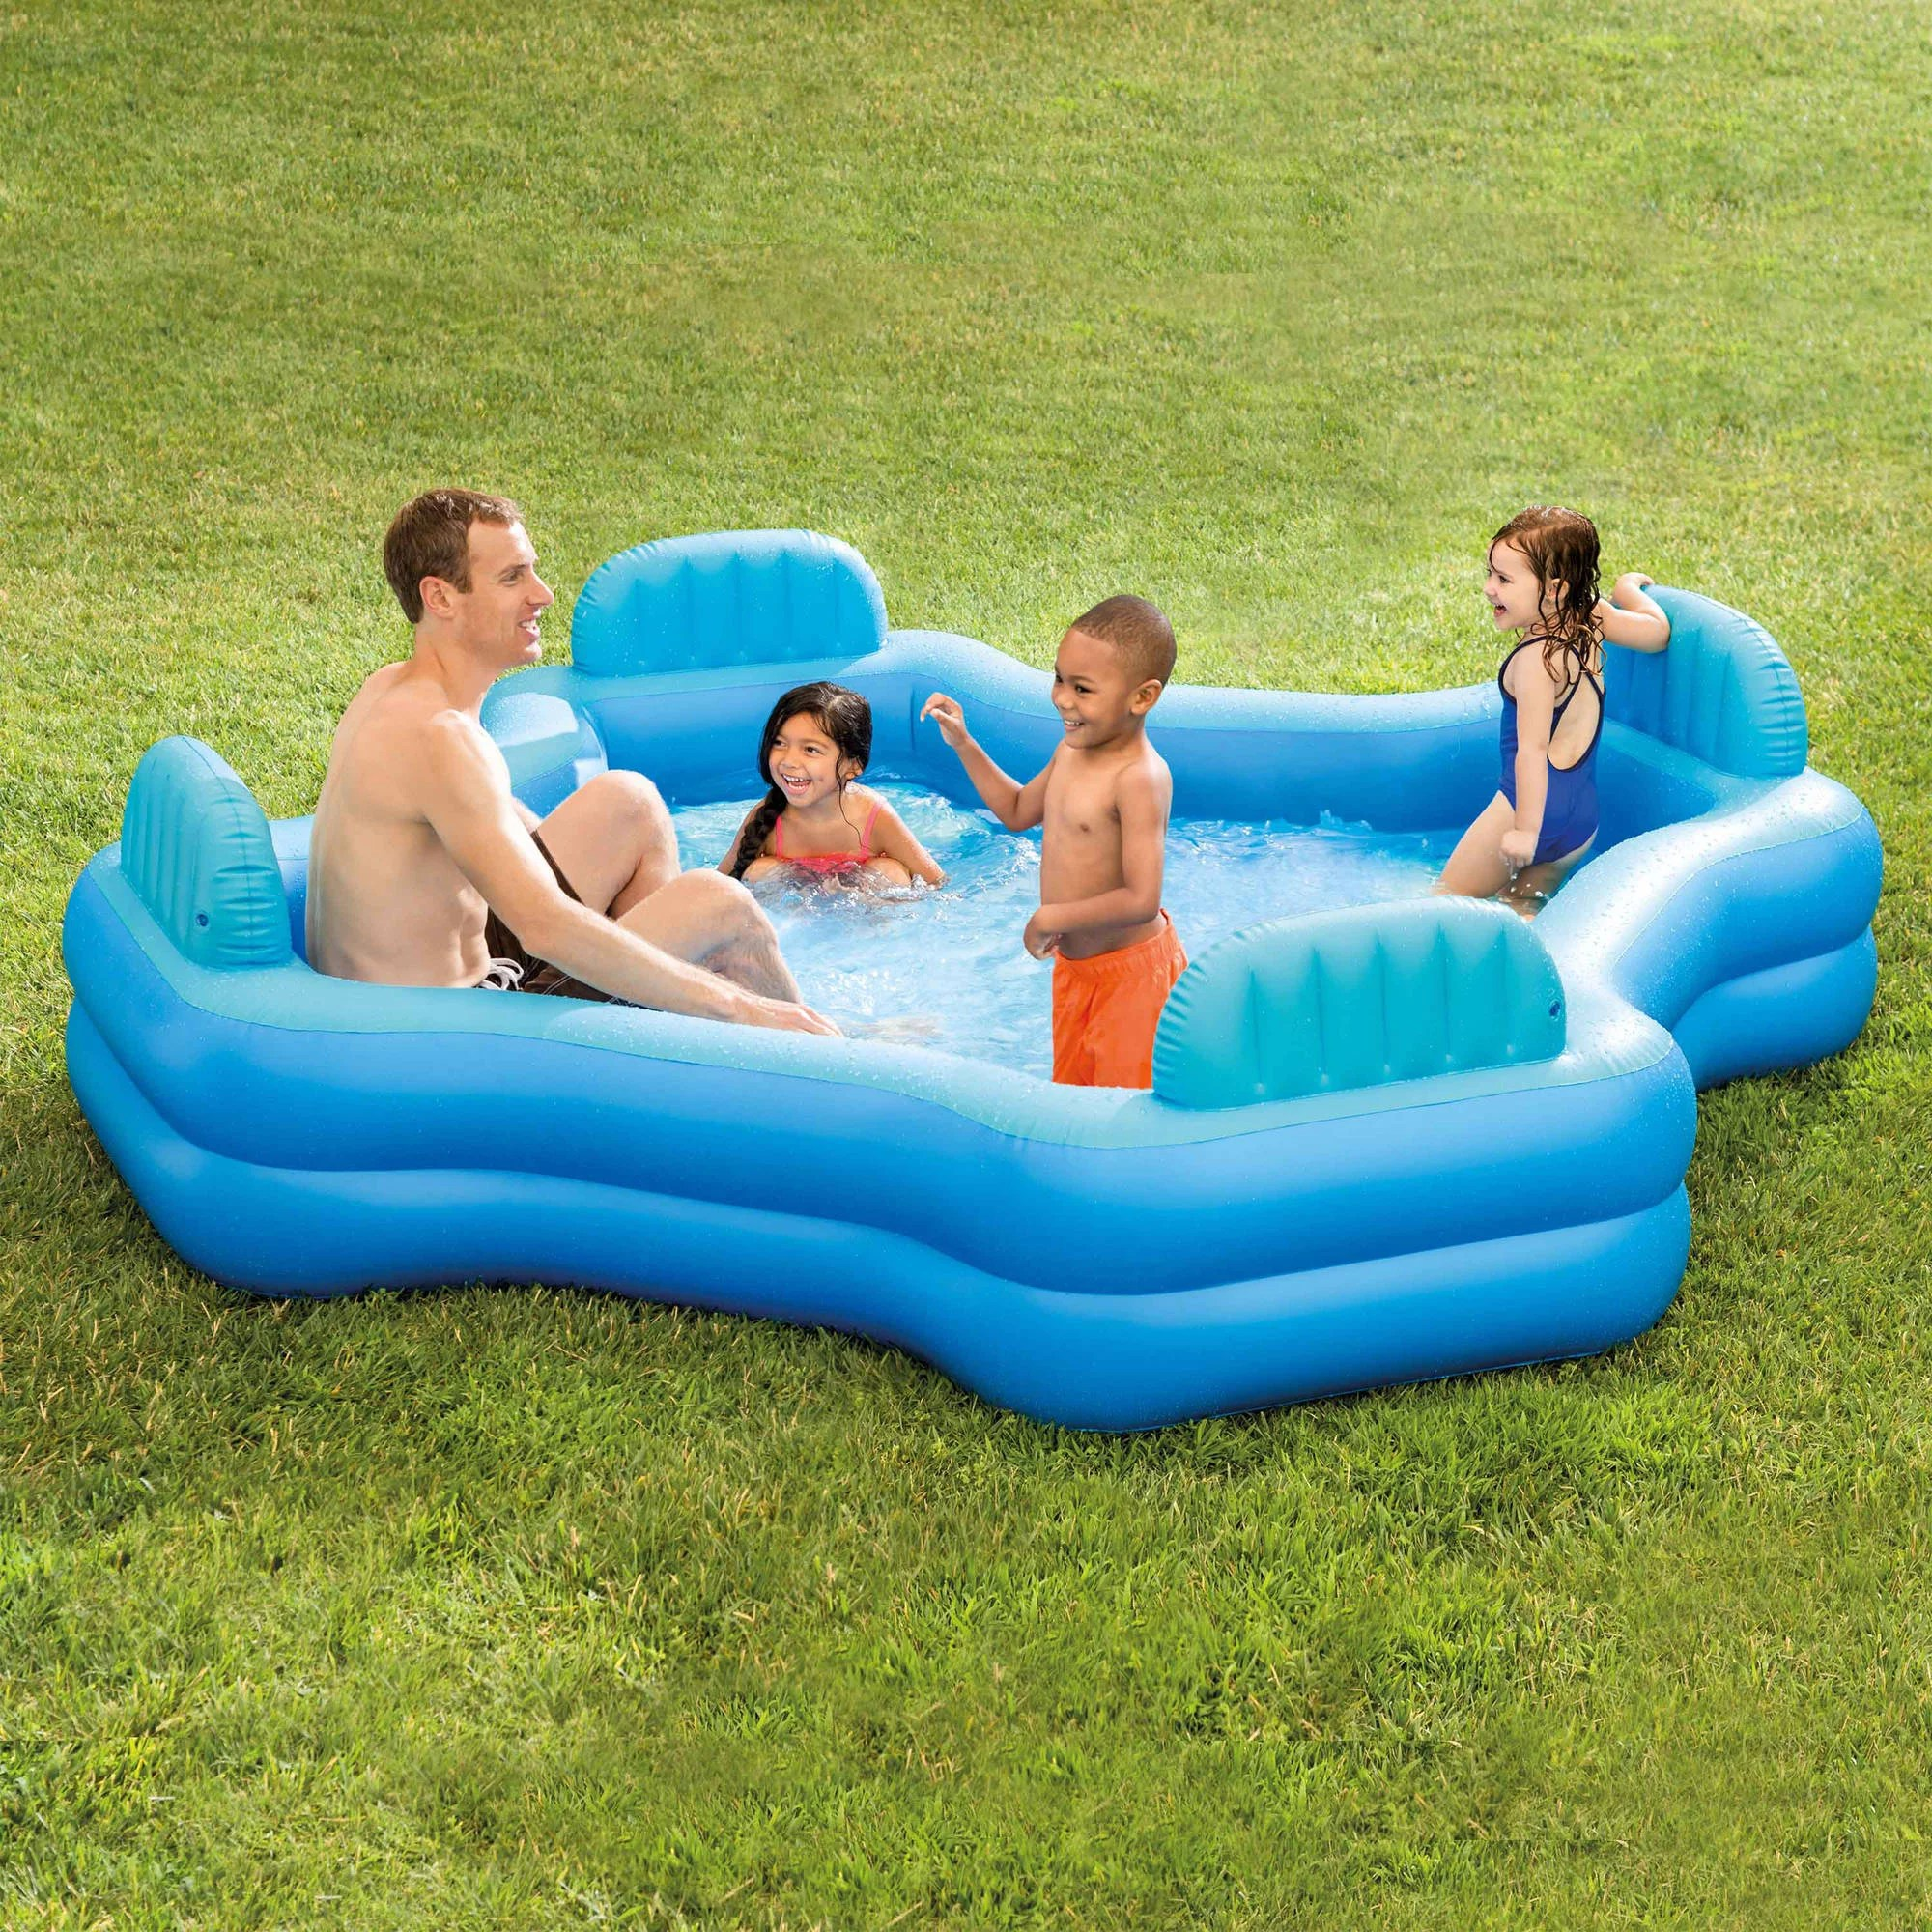 Aldi Intex Pool Intex Inflatable Swim Center Family Lounge Pool 105